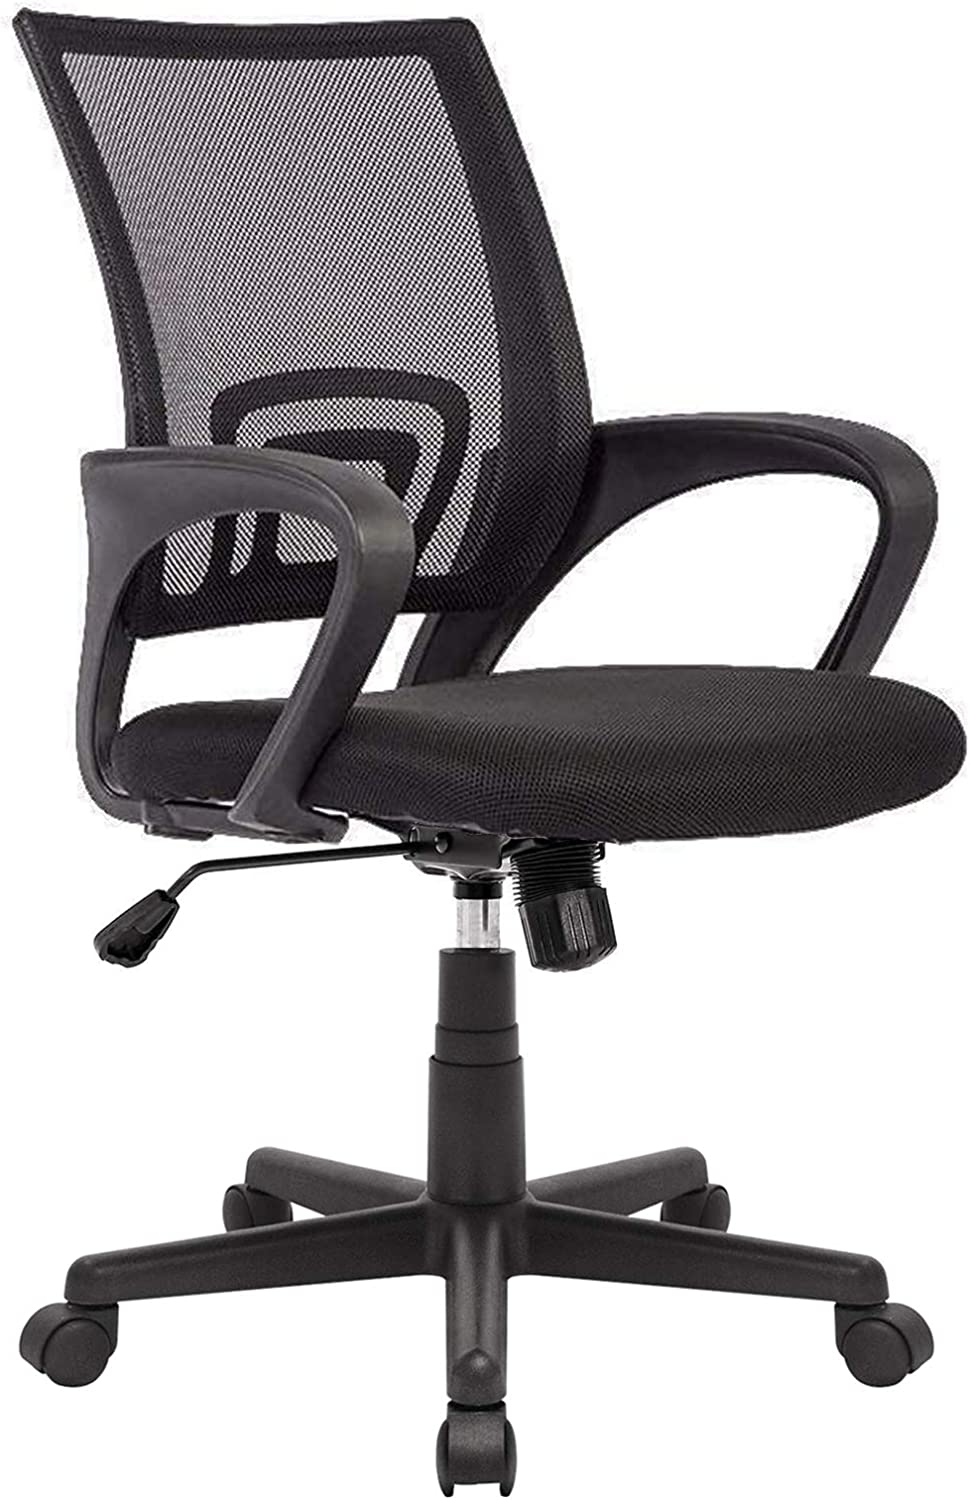 OFIKA 300LBS Office Chair Ergonomic Desk Chair, Adjustable Task Chair for Lumbar Back Support, Mesh Back Computer Chair, Rolling Swivel and Armrest, Modern Executive Home Office Desk Chairs (Black)